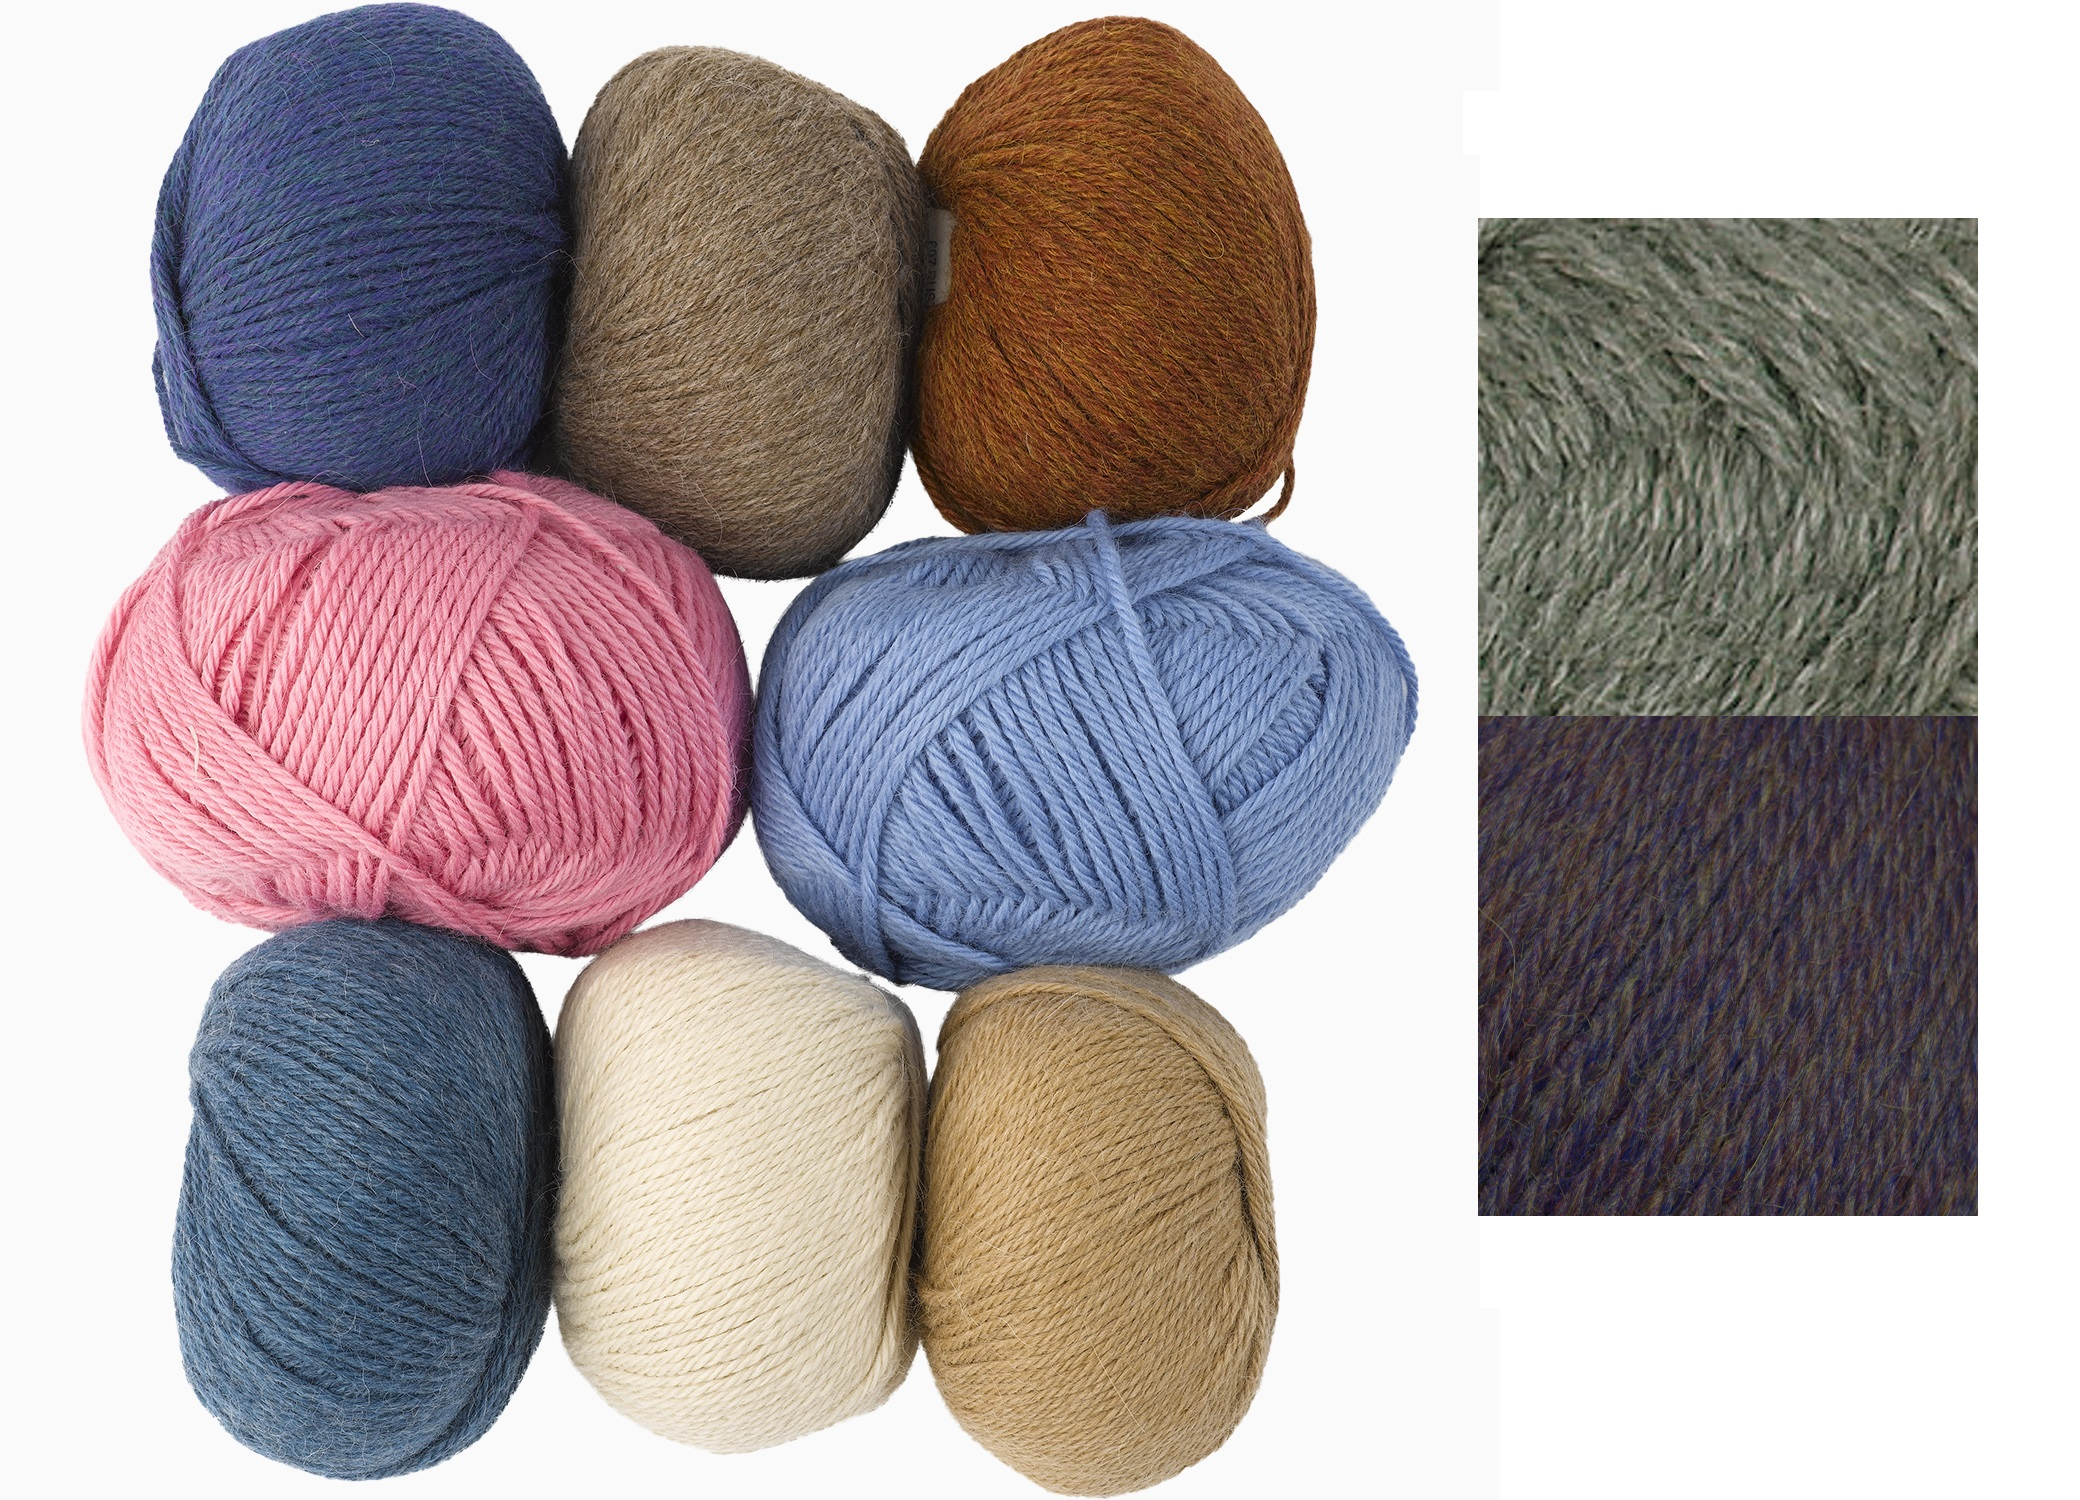 Yarn Knitting : Details about King Cole Yarn Baby Alpaca Dk Double Knitting Wool Super ...